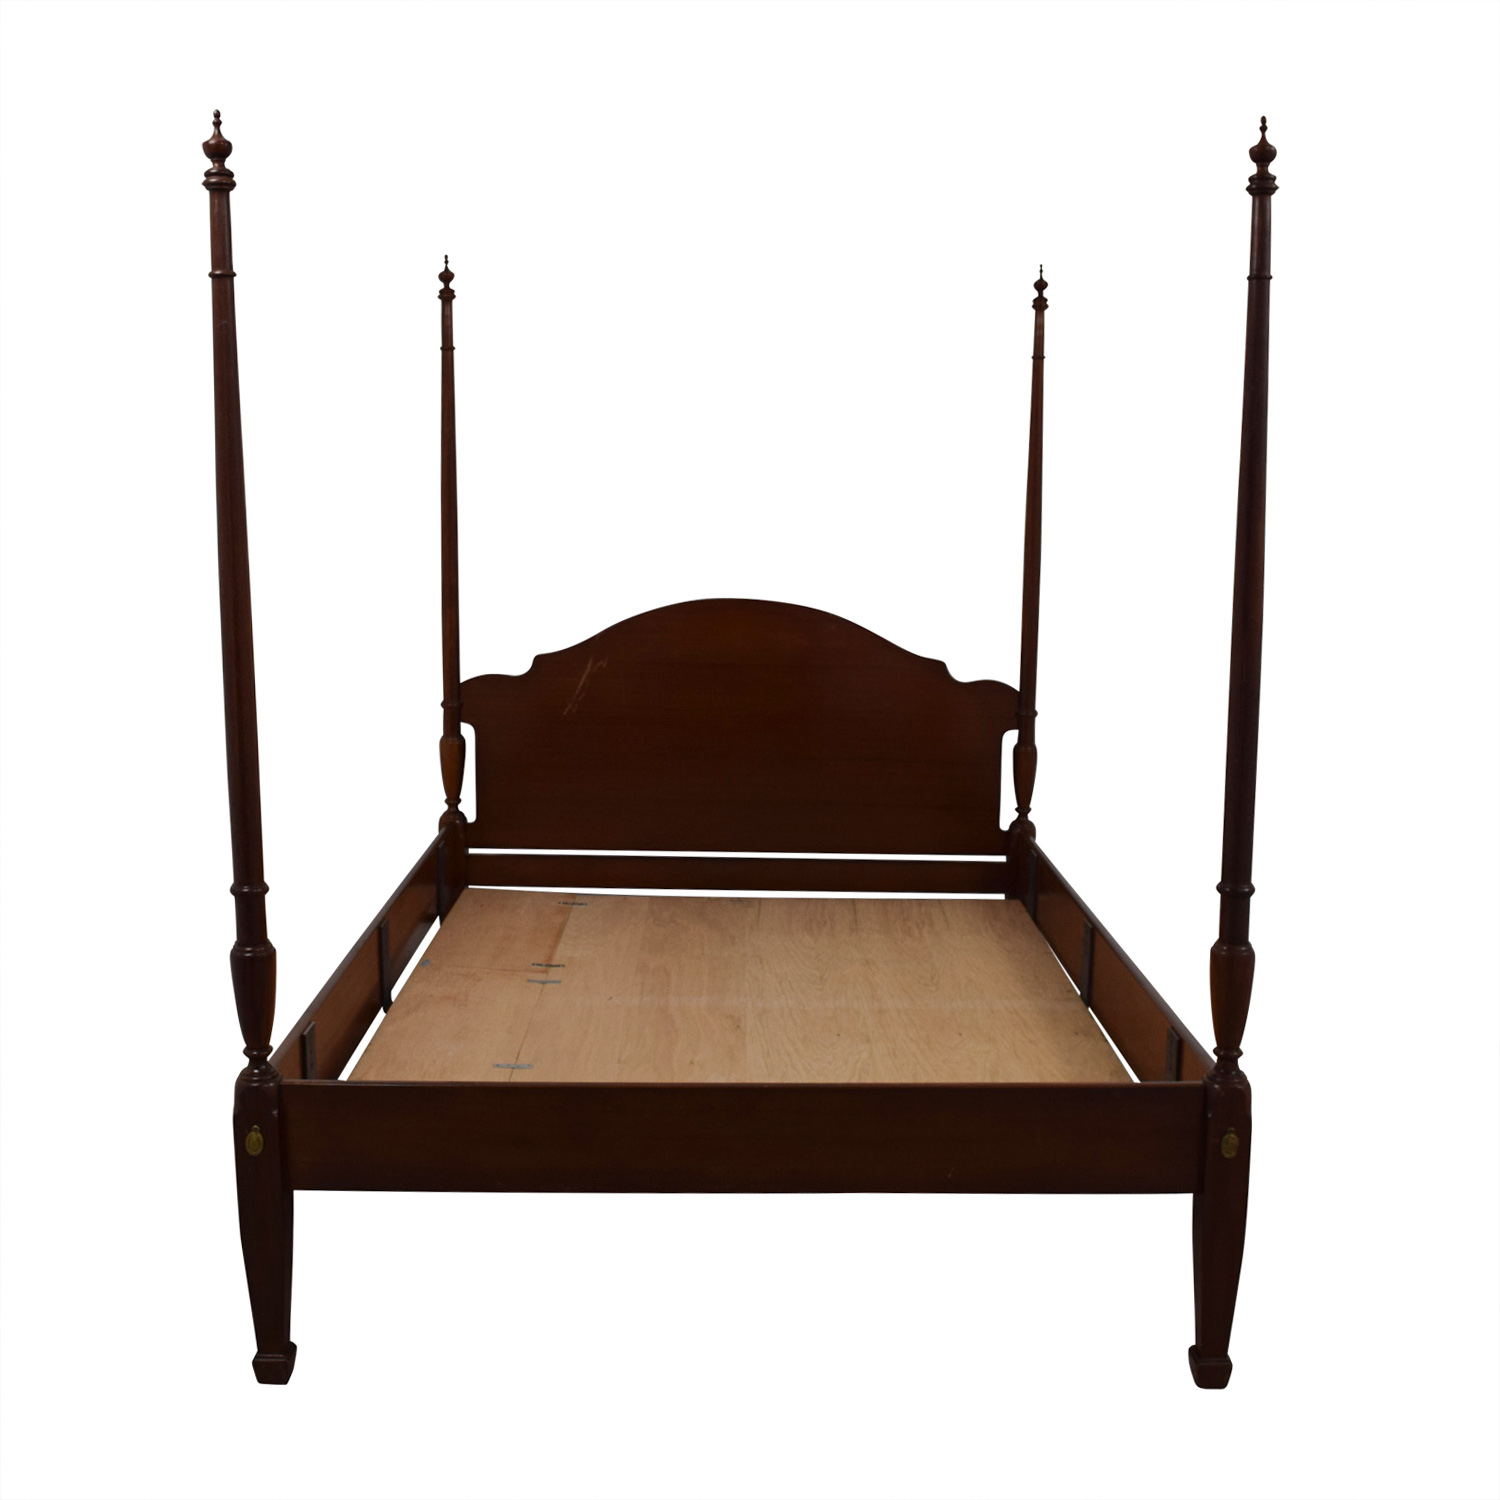 Ethan Allen Ethan Allen Queen Four Poster Platform Bed used